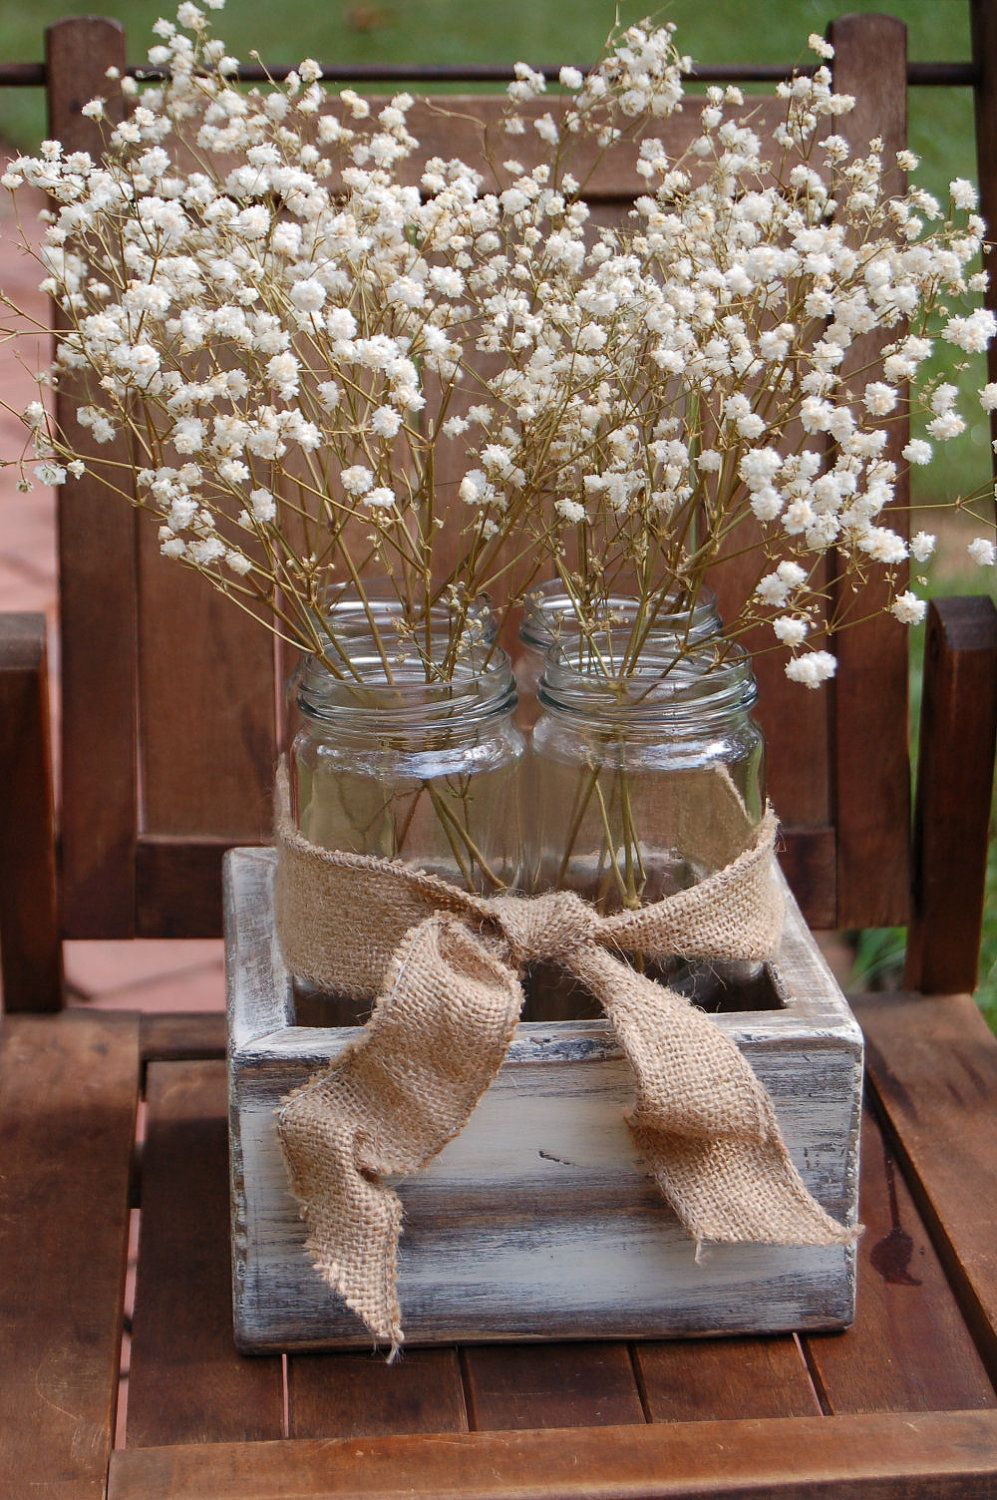 rustic wedding centerpieces Rustic Square Box with Jars and Burlap Rustic Centerpiece 7inch